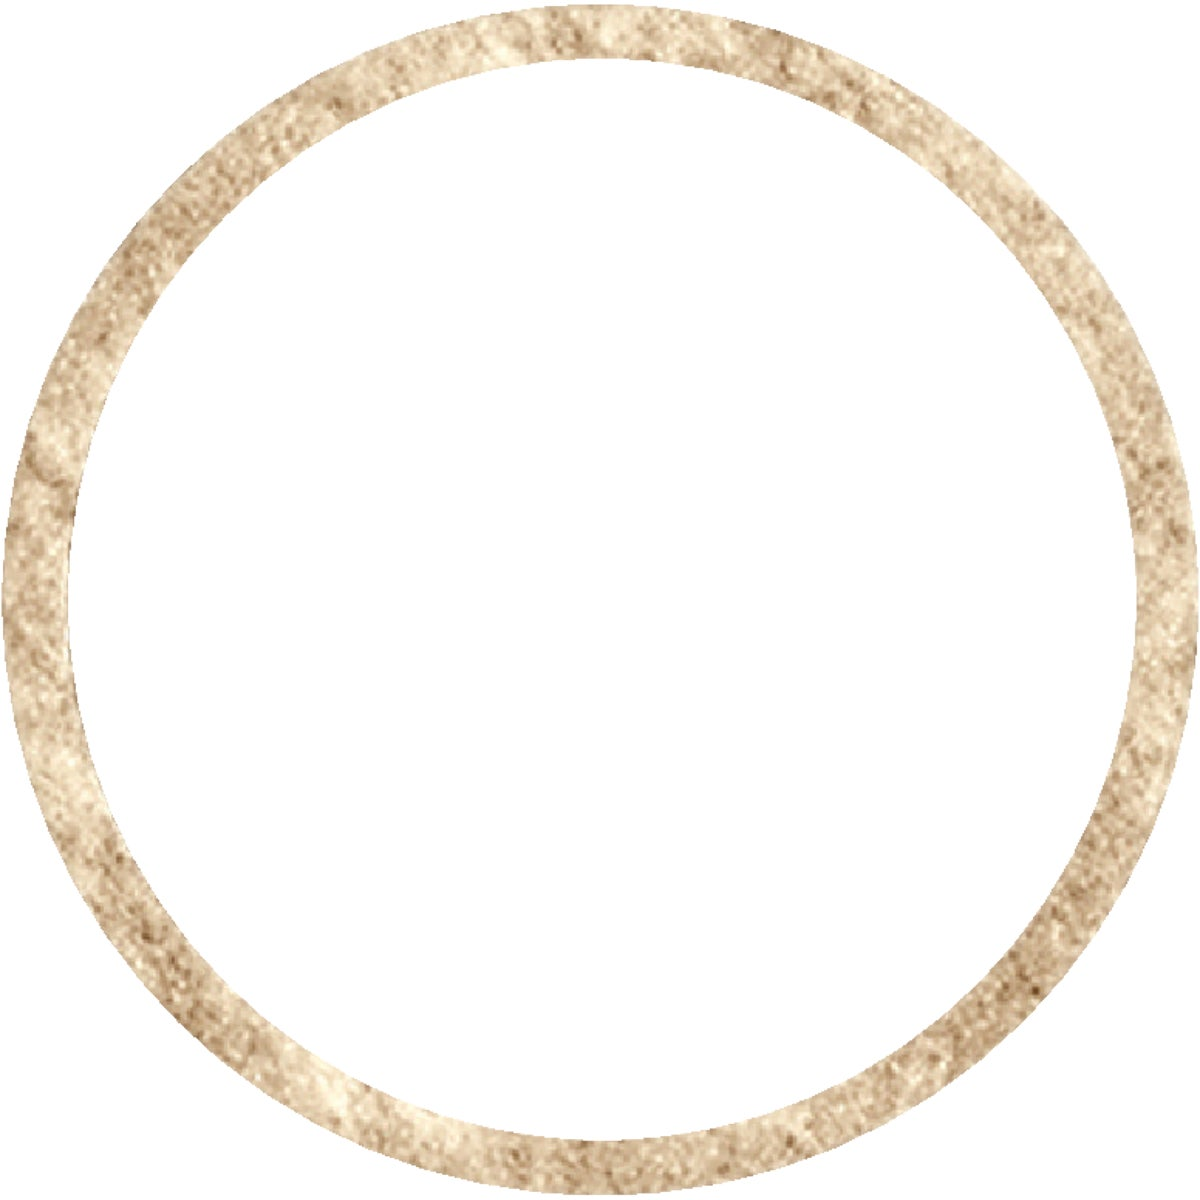 #35 CAP THREAD GASKET - 35570B by Danco Perfect Match